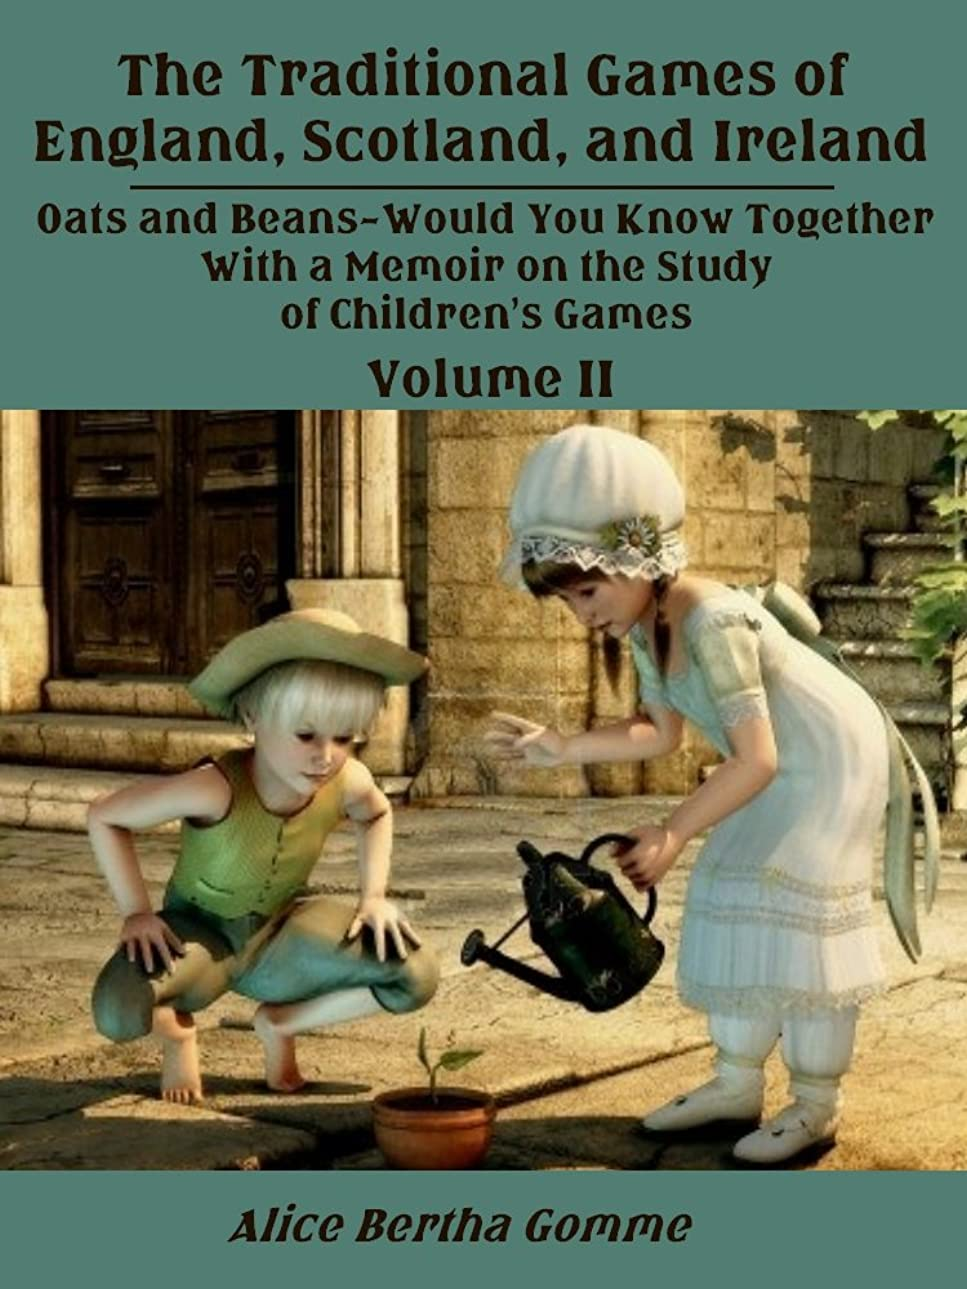 The Traditional Games of England, Scotland, and Ireland : Oats and Beans-Would You Know Together with a Memoir on the Study of Children's Games, Volume II (Illustrated) (English Edition)